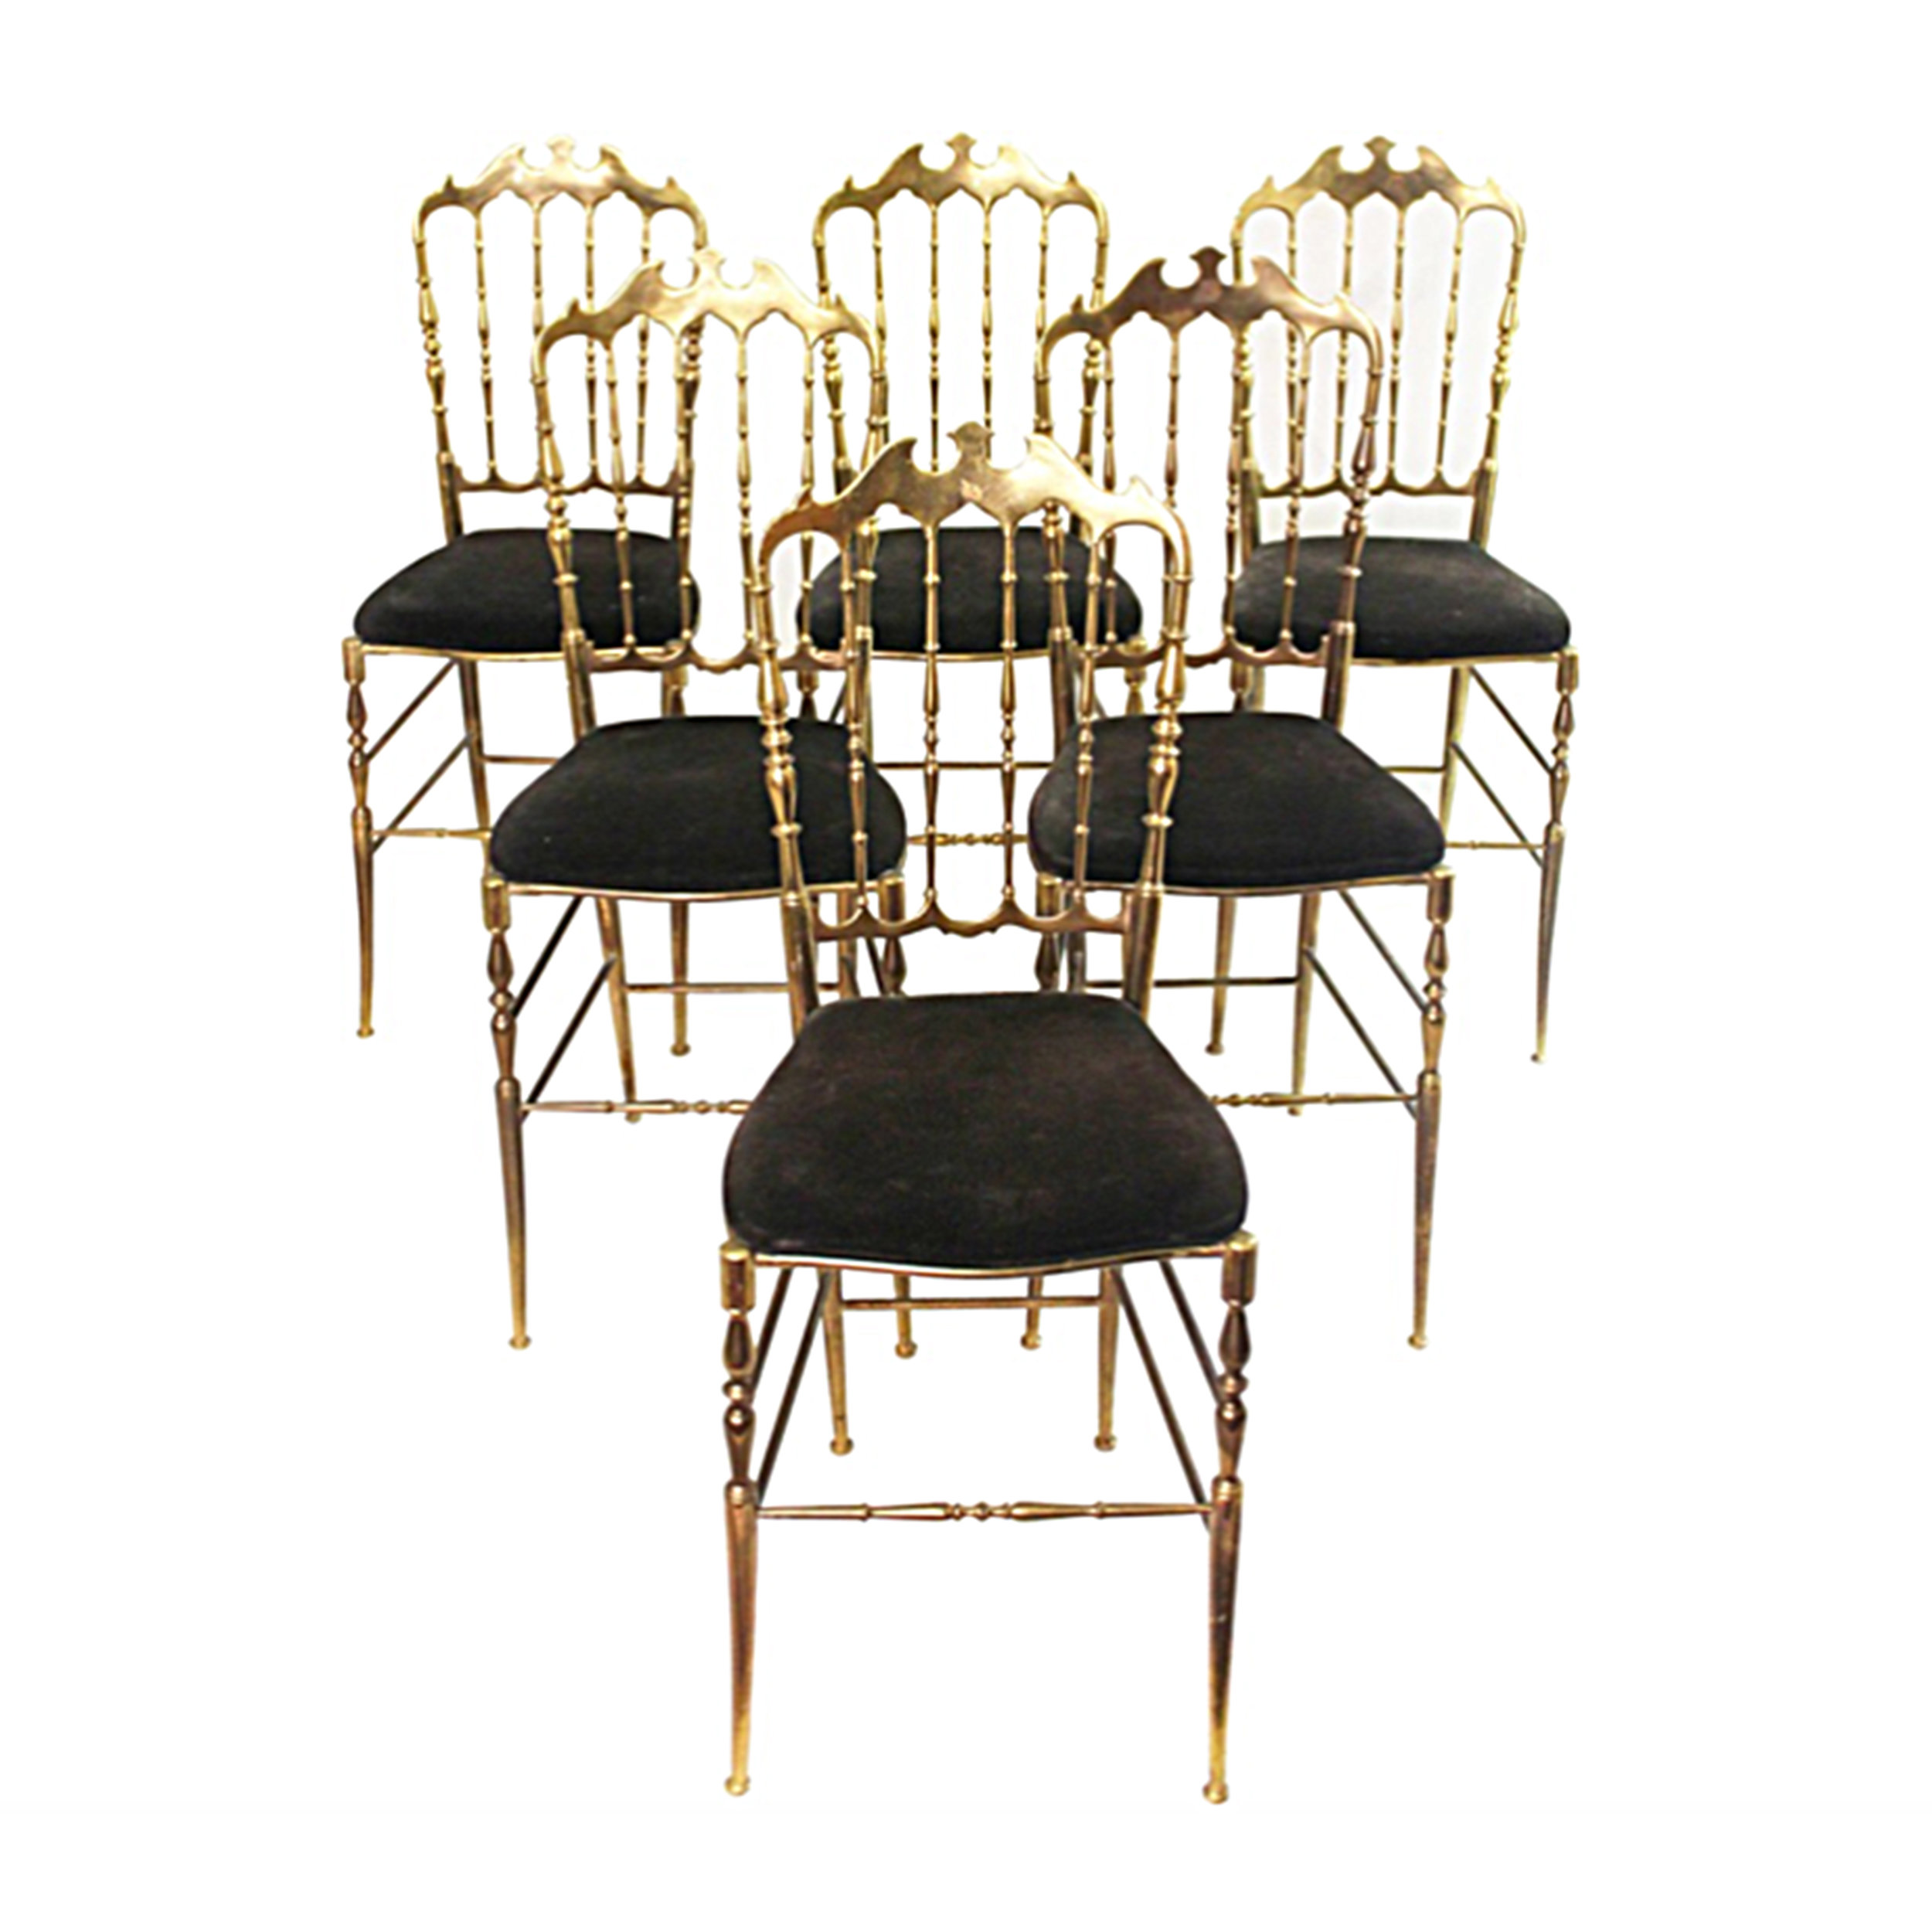 Complete Set of Chiavari Brass Chairs